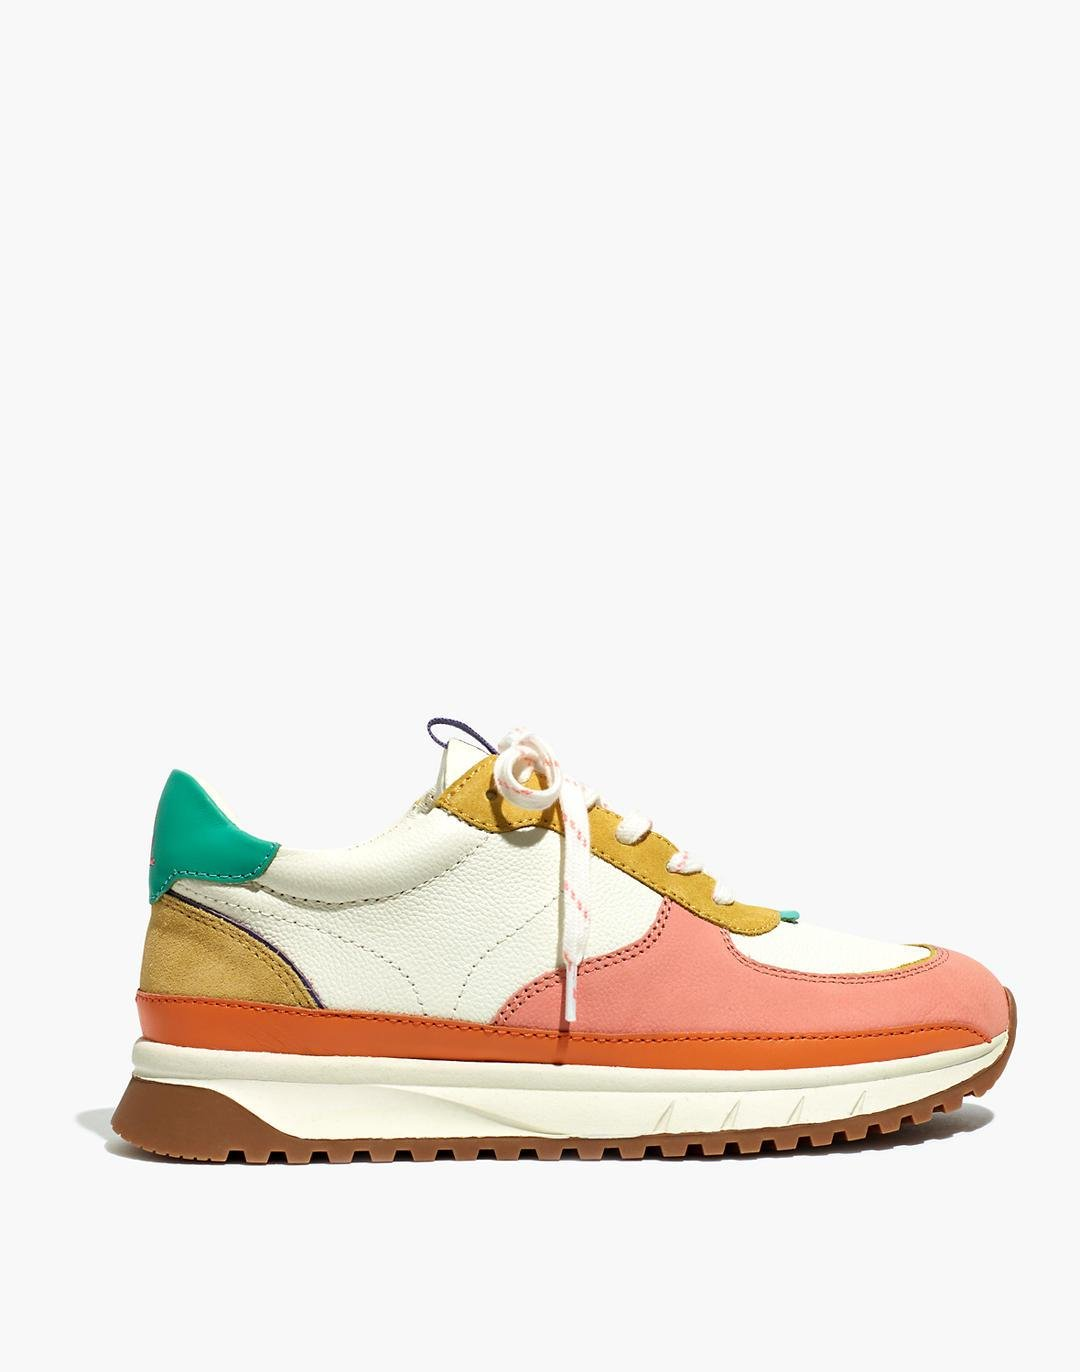 Kickoff Trainer Sneakers in Colorblock Leather 1